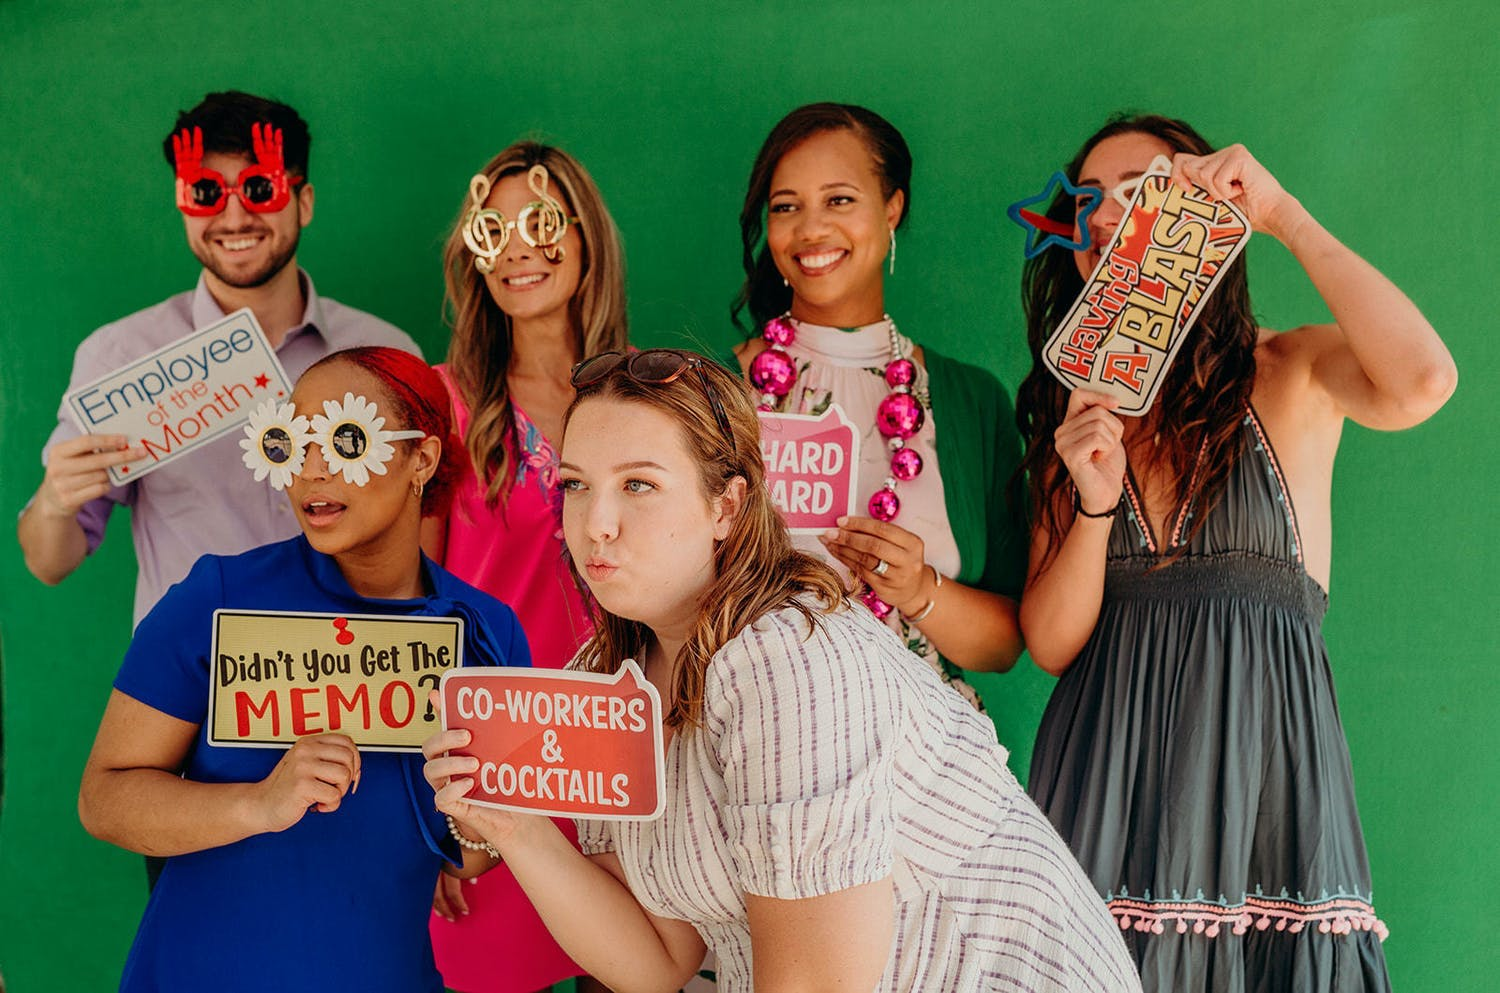 Guests pose against green backdrop at corporate event with fun photo props | PartySlate